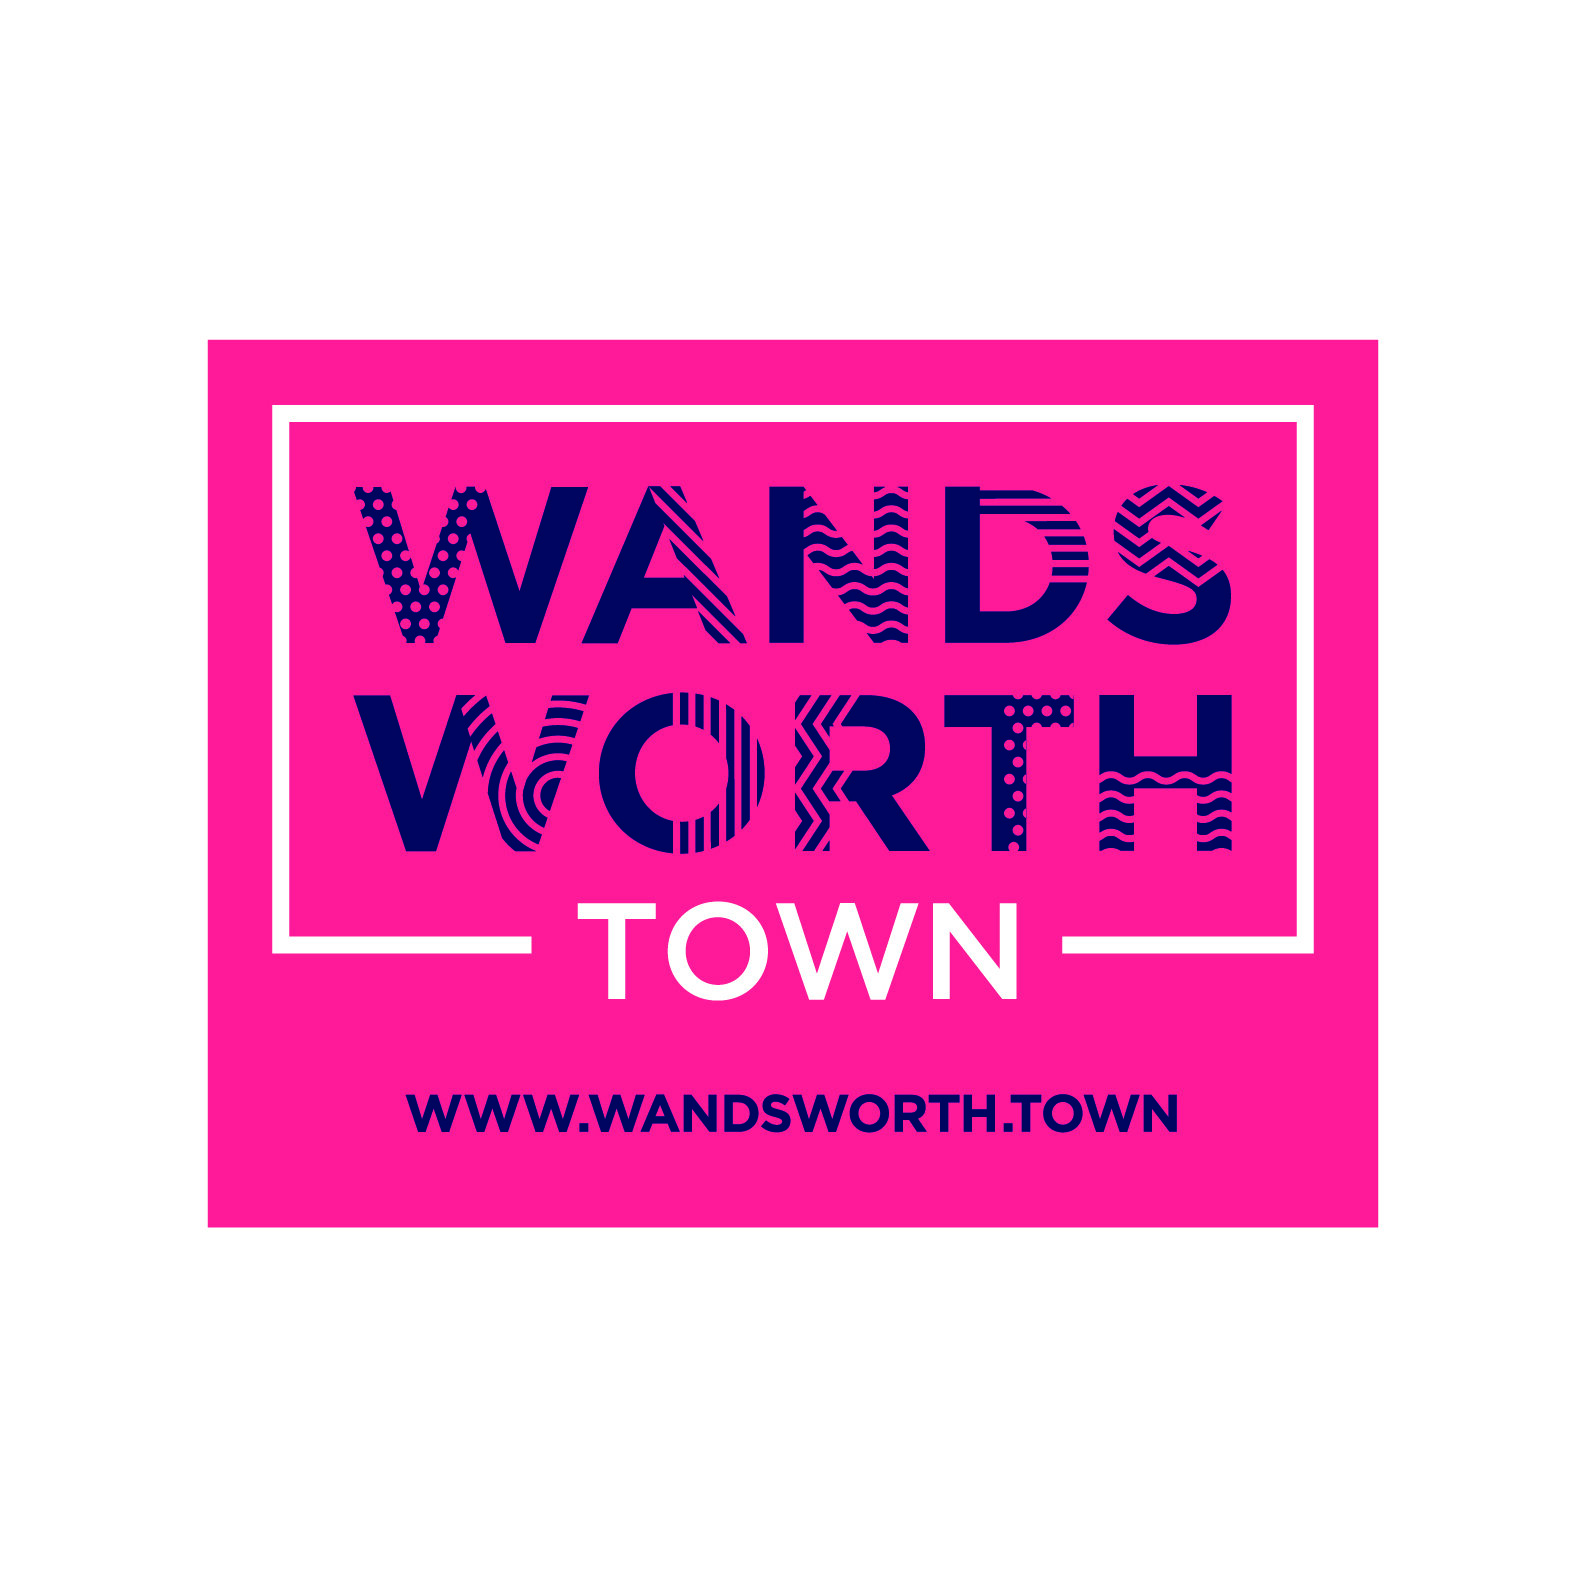 - The Wandsworth Town BID puts businesses at the heart of what we do; with business people acting as a central partner in shaping the future of Wandsworth Town. Wandsworth Town BID is avidly committed to the long term improvement and future of our town centre for the benefit of our businesses and promoting the distinctive charm and appeal of our thriving Town centre in order to encourage more visitors and residents to explore and do business locally.